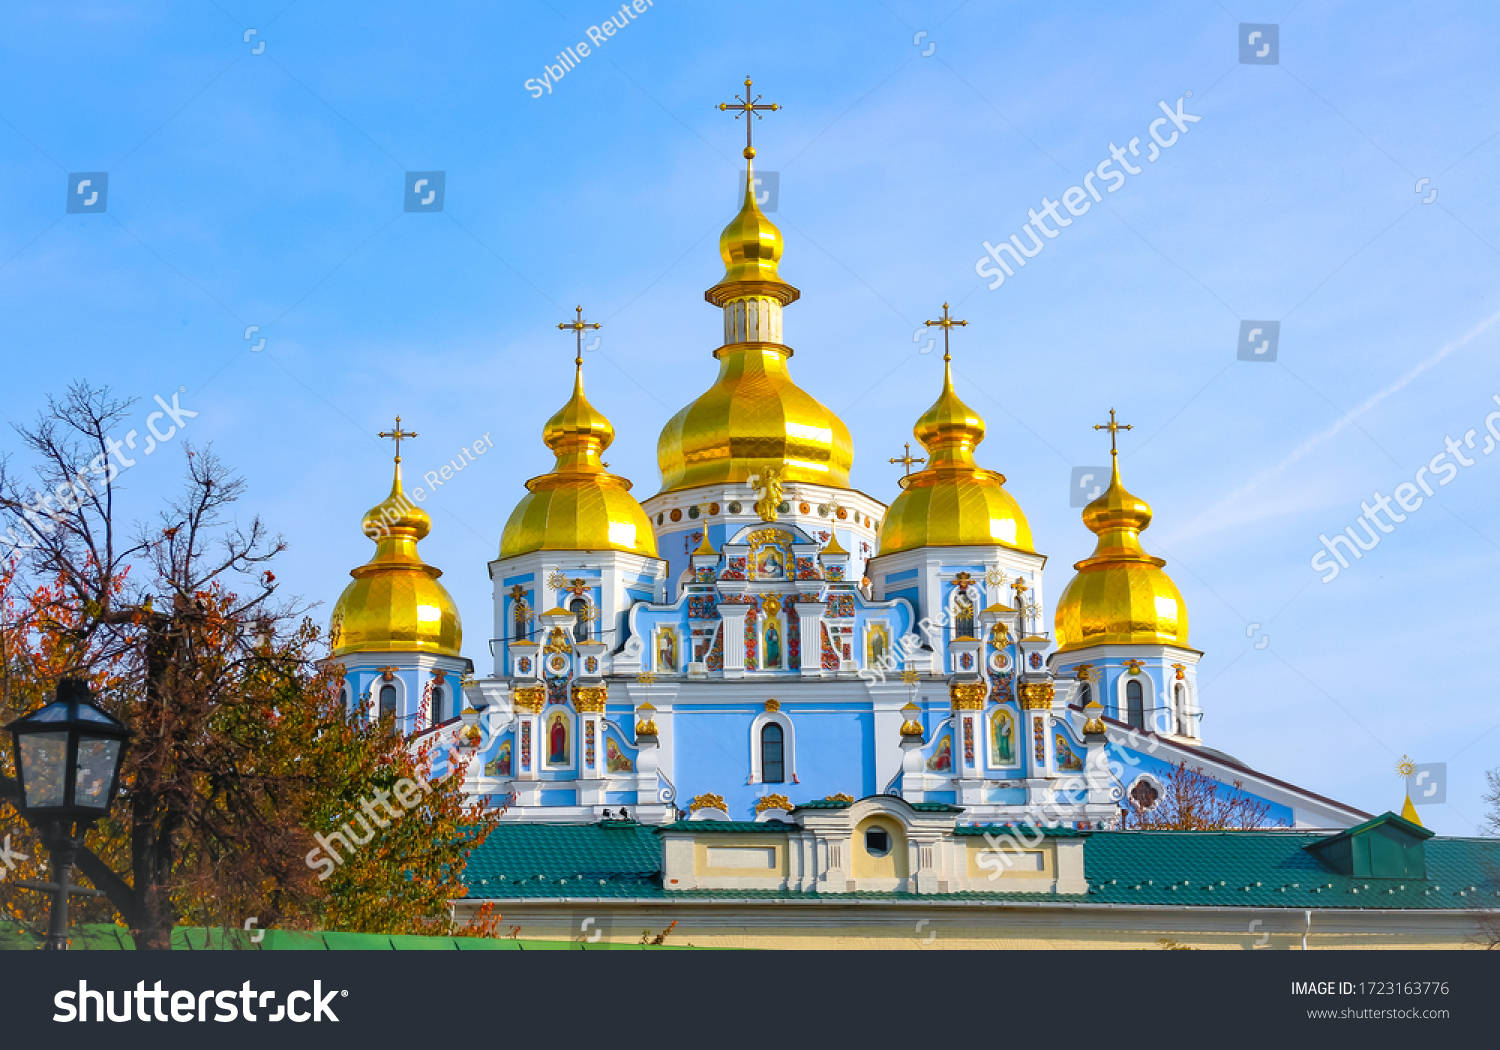 St. Michael's Golden-Domed Monastery, a functioning monastery with its iconic gold colored domes and blue facade in Kiev, capital of Ukraine.